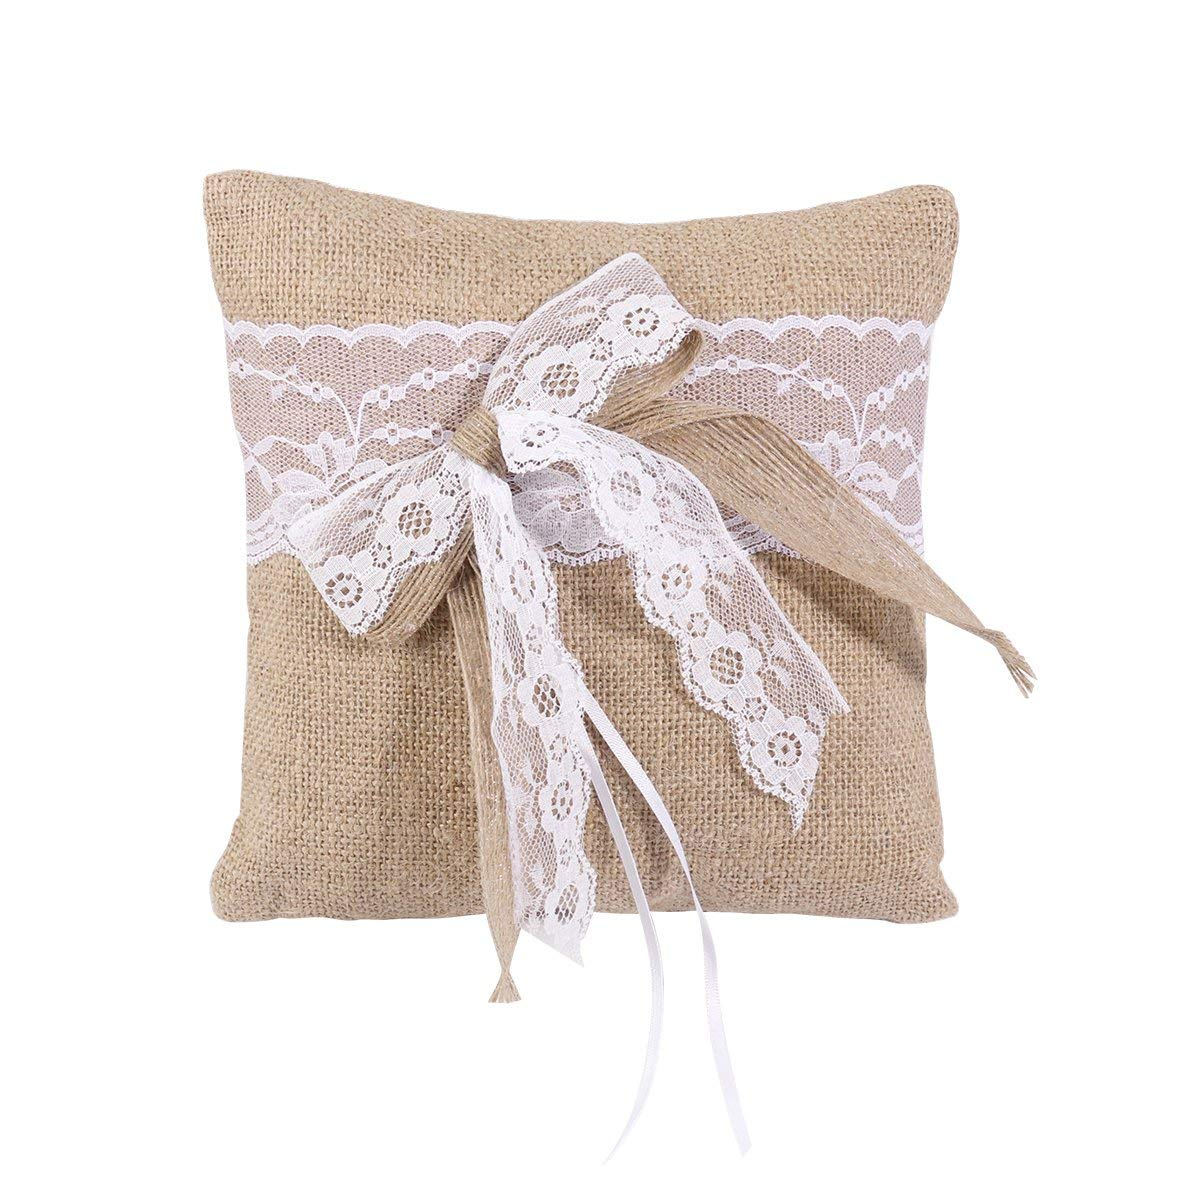 Vosarea Wedding Ring Pillow Hessian Burlap Bridal Bearer Holder Cushion With Lace: Wedding Burlap And Lace Ring Pillow At Websimilar.org